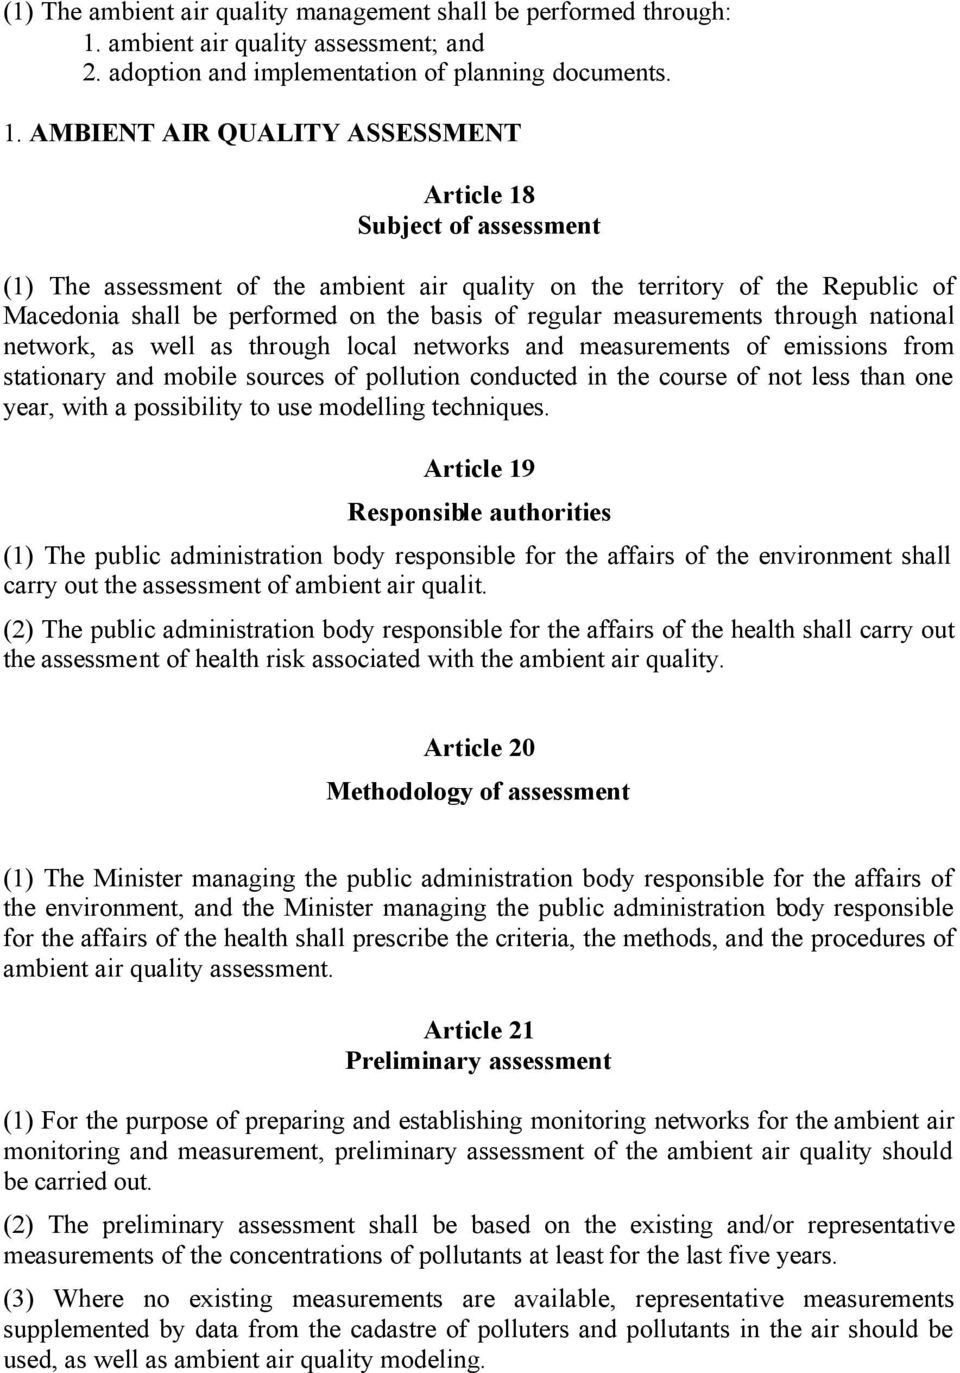 AMBIENT AIR QUALITY ASSESSMENT Article 18 Subject of assessment (1) The assessment of the ambient air quality on the territory of the Republic of Macedonia shall be performed on the basis of regular